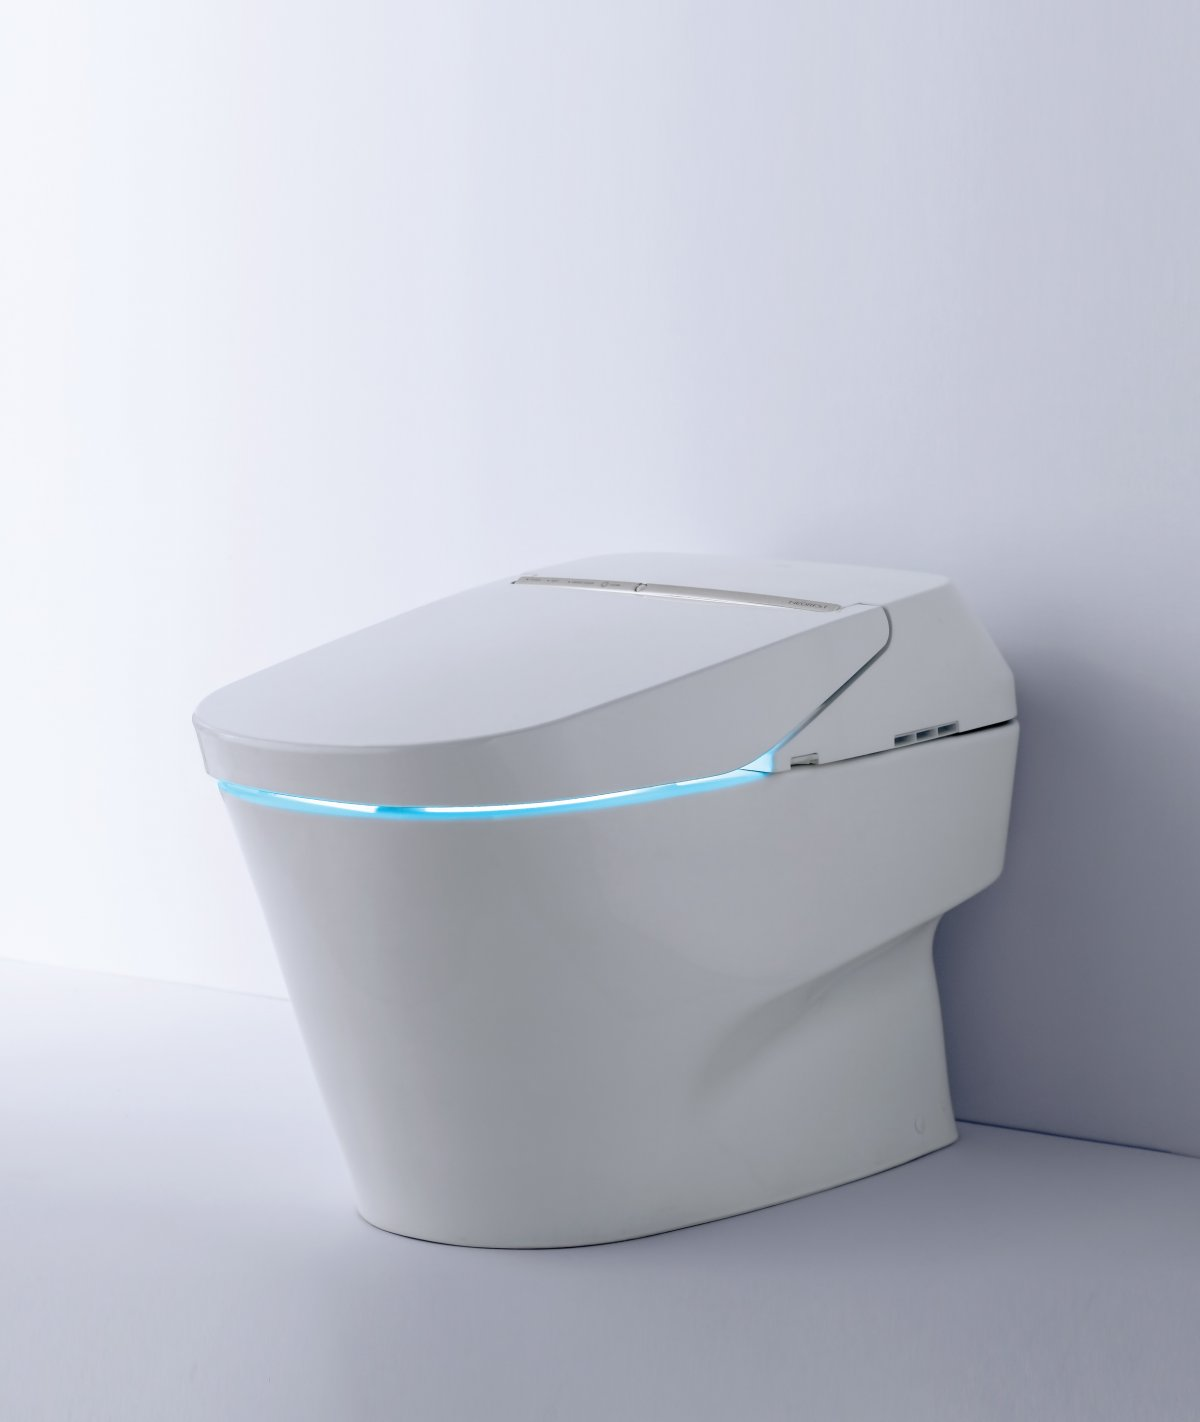 self opening toilet seat.  10 000 toilet that has self opening lids and a remote control Kenya Premier League Archives Kenyatta University TV KUTV All